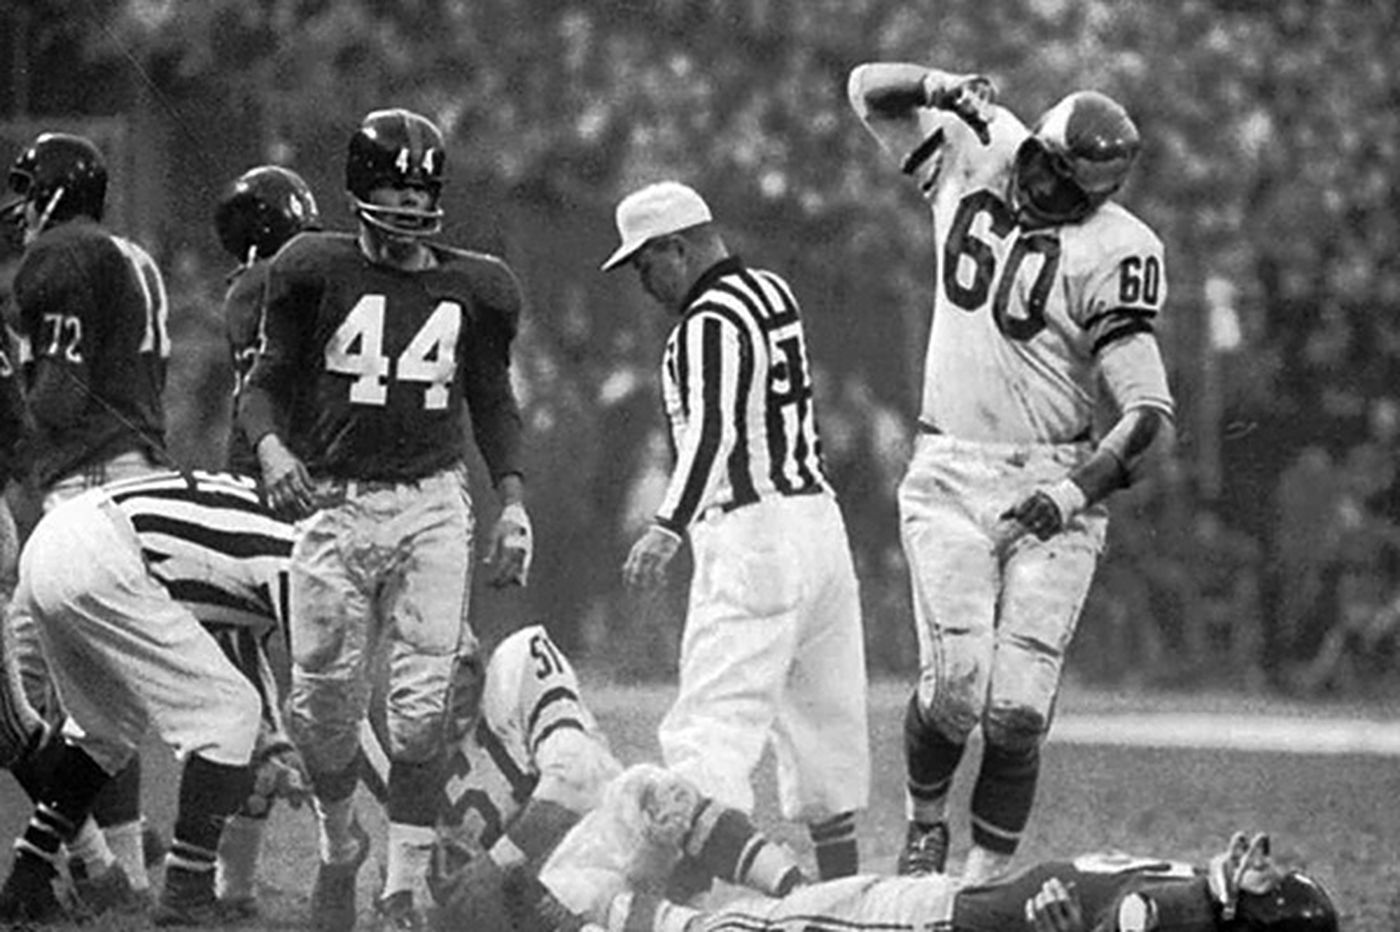 When Chuck Bednarik knocked out Frank Gifford